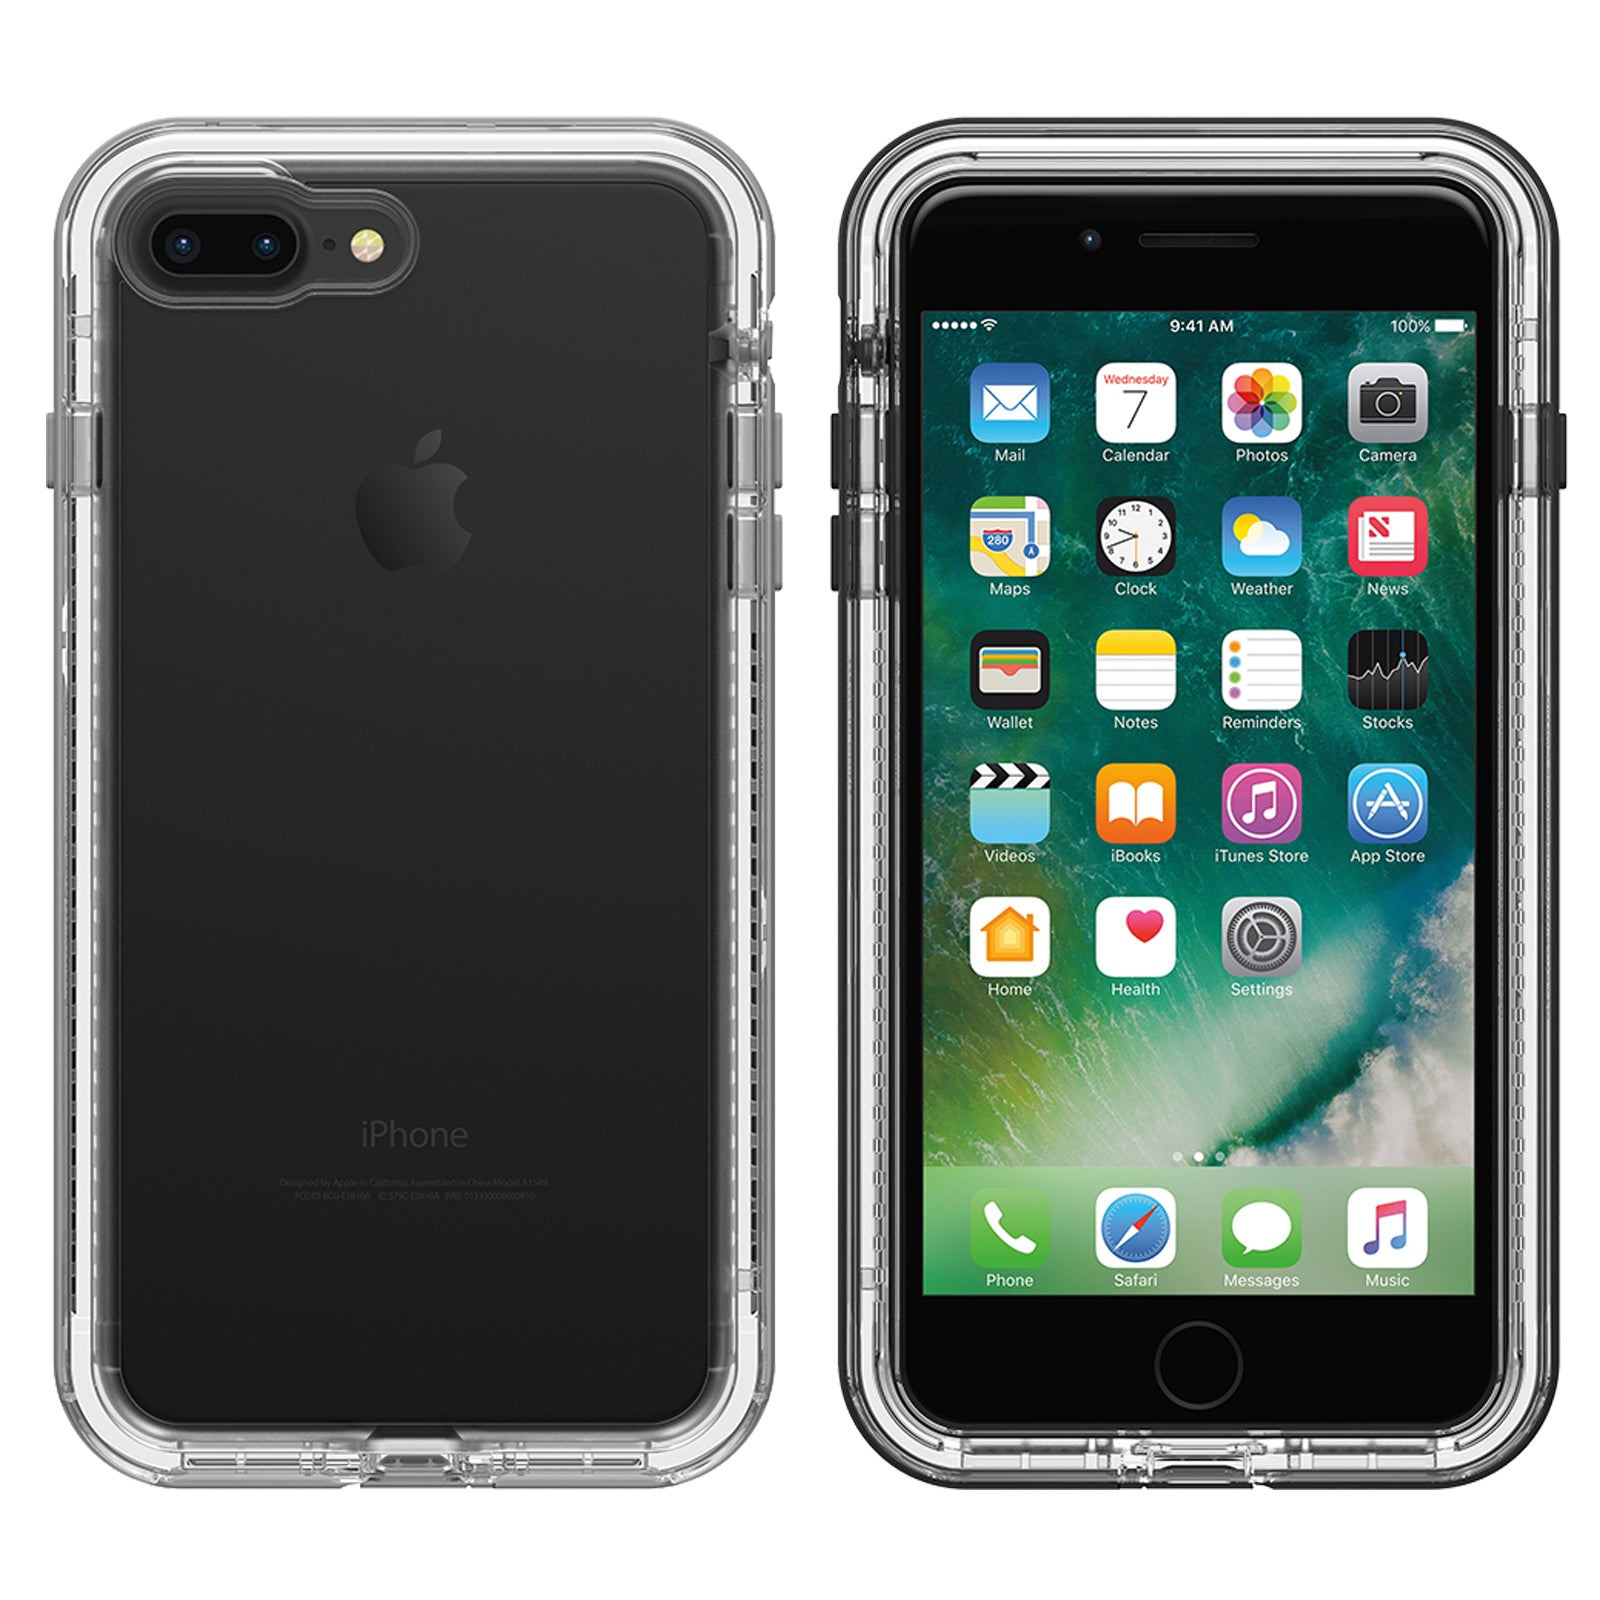 newest 8e497 1bad0 Lifeproof NEXT Case For iPhone 7/8 PLUS - Black Crystal